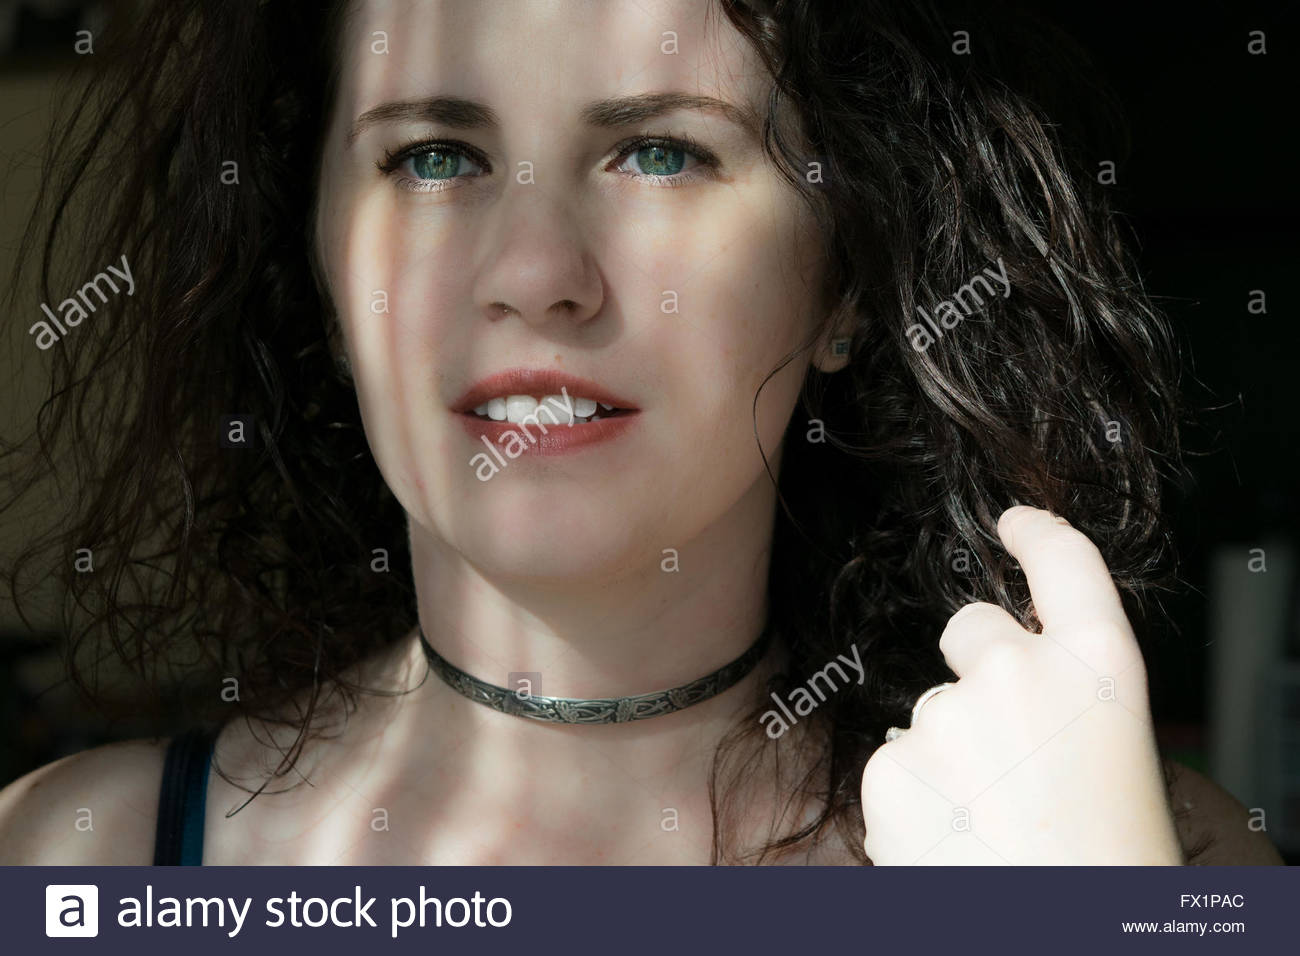 Woman waiting for her love - Stock Image